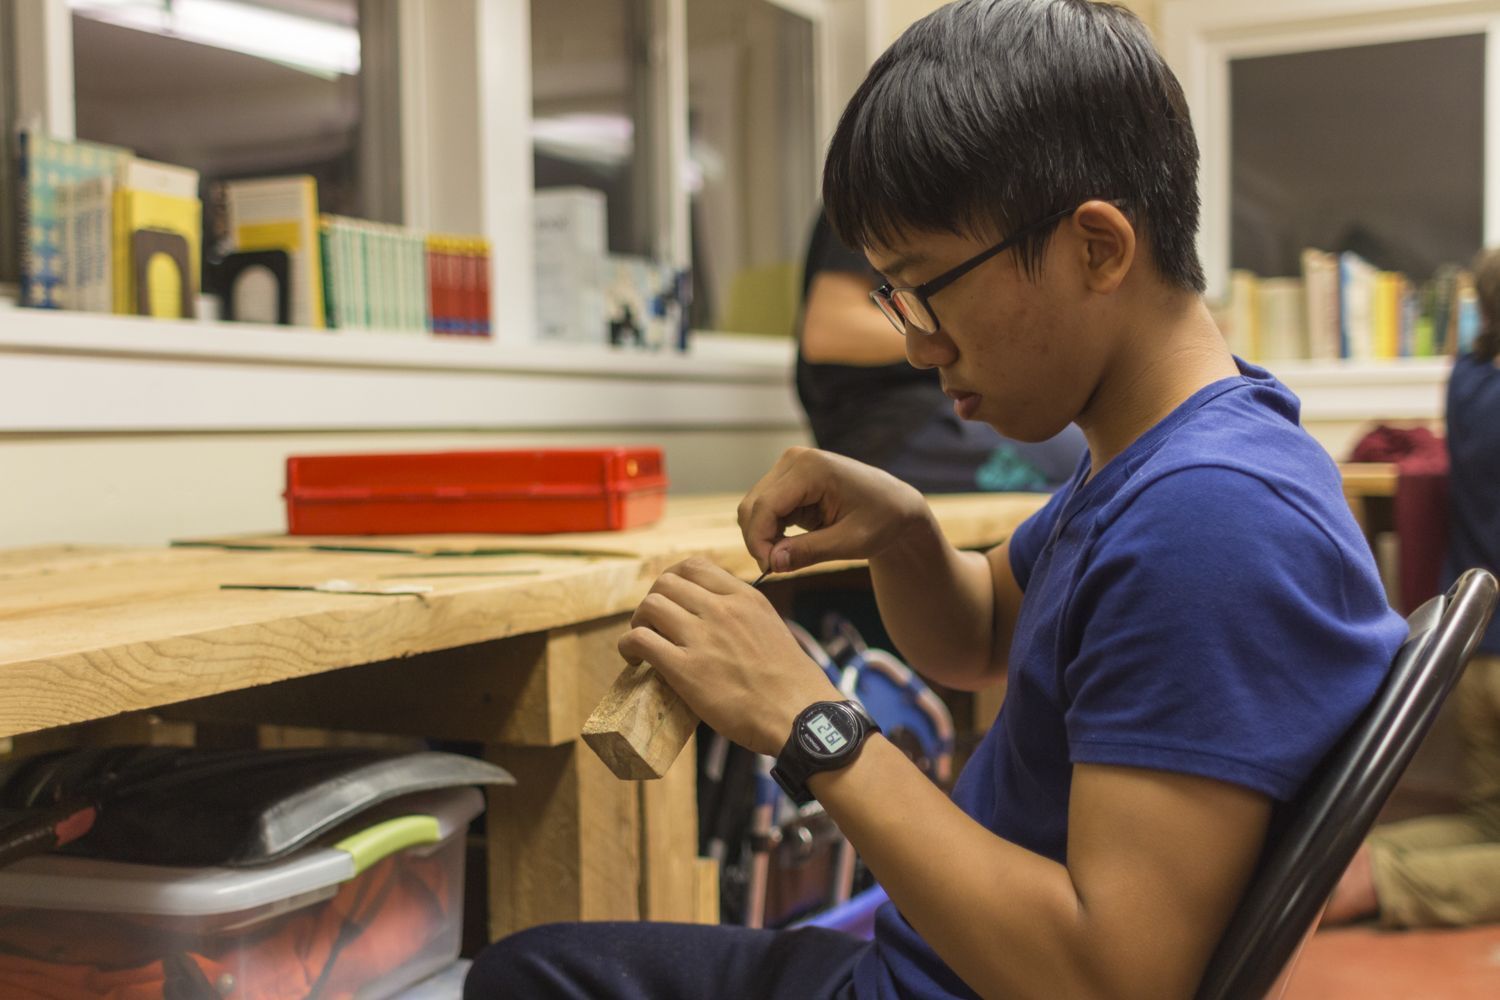 David Jiao '20 works to file out the tang housing for what will be a handmade full tang Swedish fixed blade knife. Knife Making is a new course for the 2016-17 school year and is offered as an evening course.